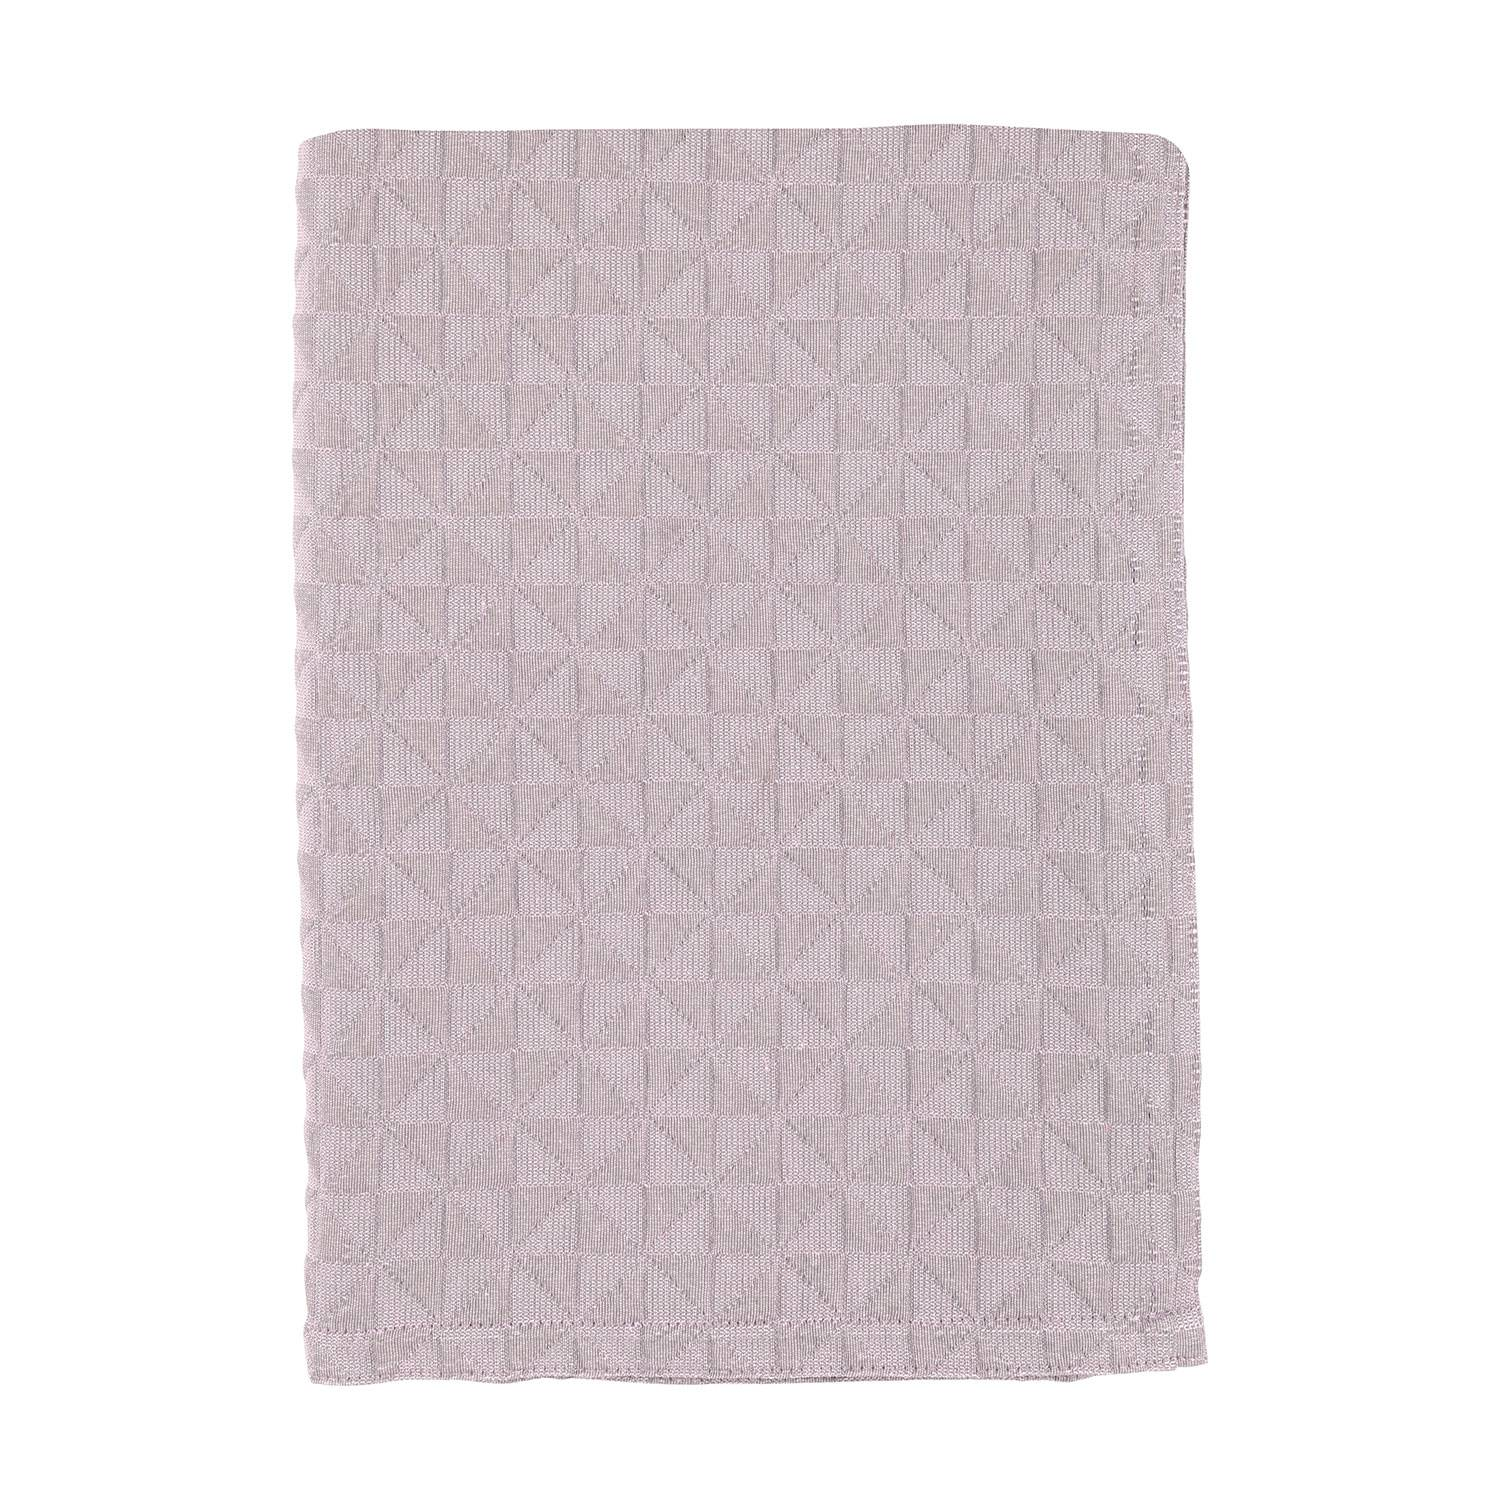 Mette Ditmer Butterfly Quilt 260x250cm, Rose